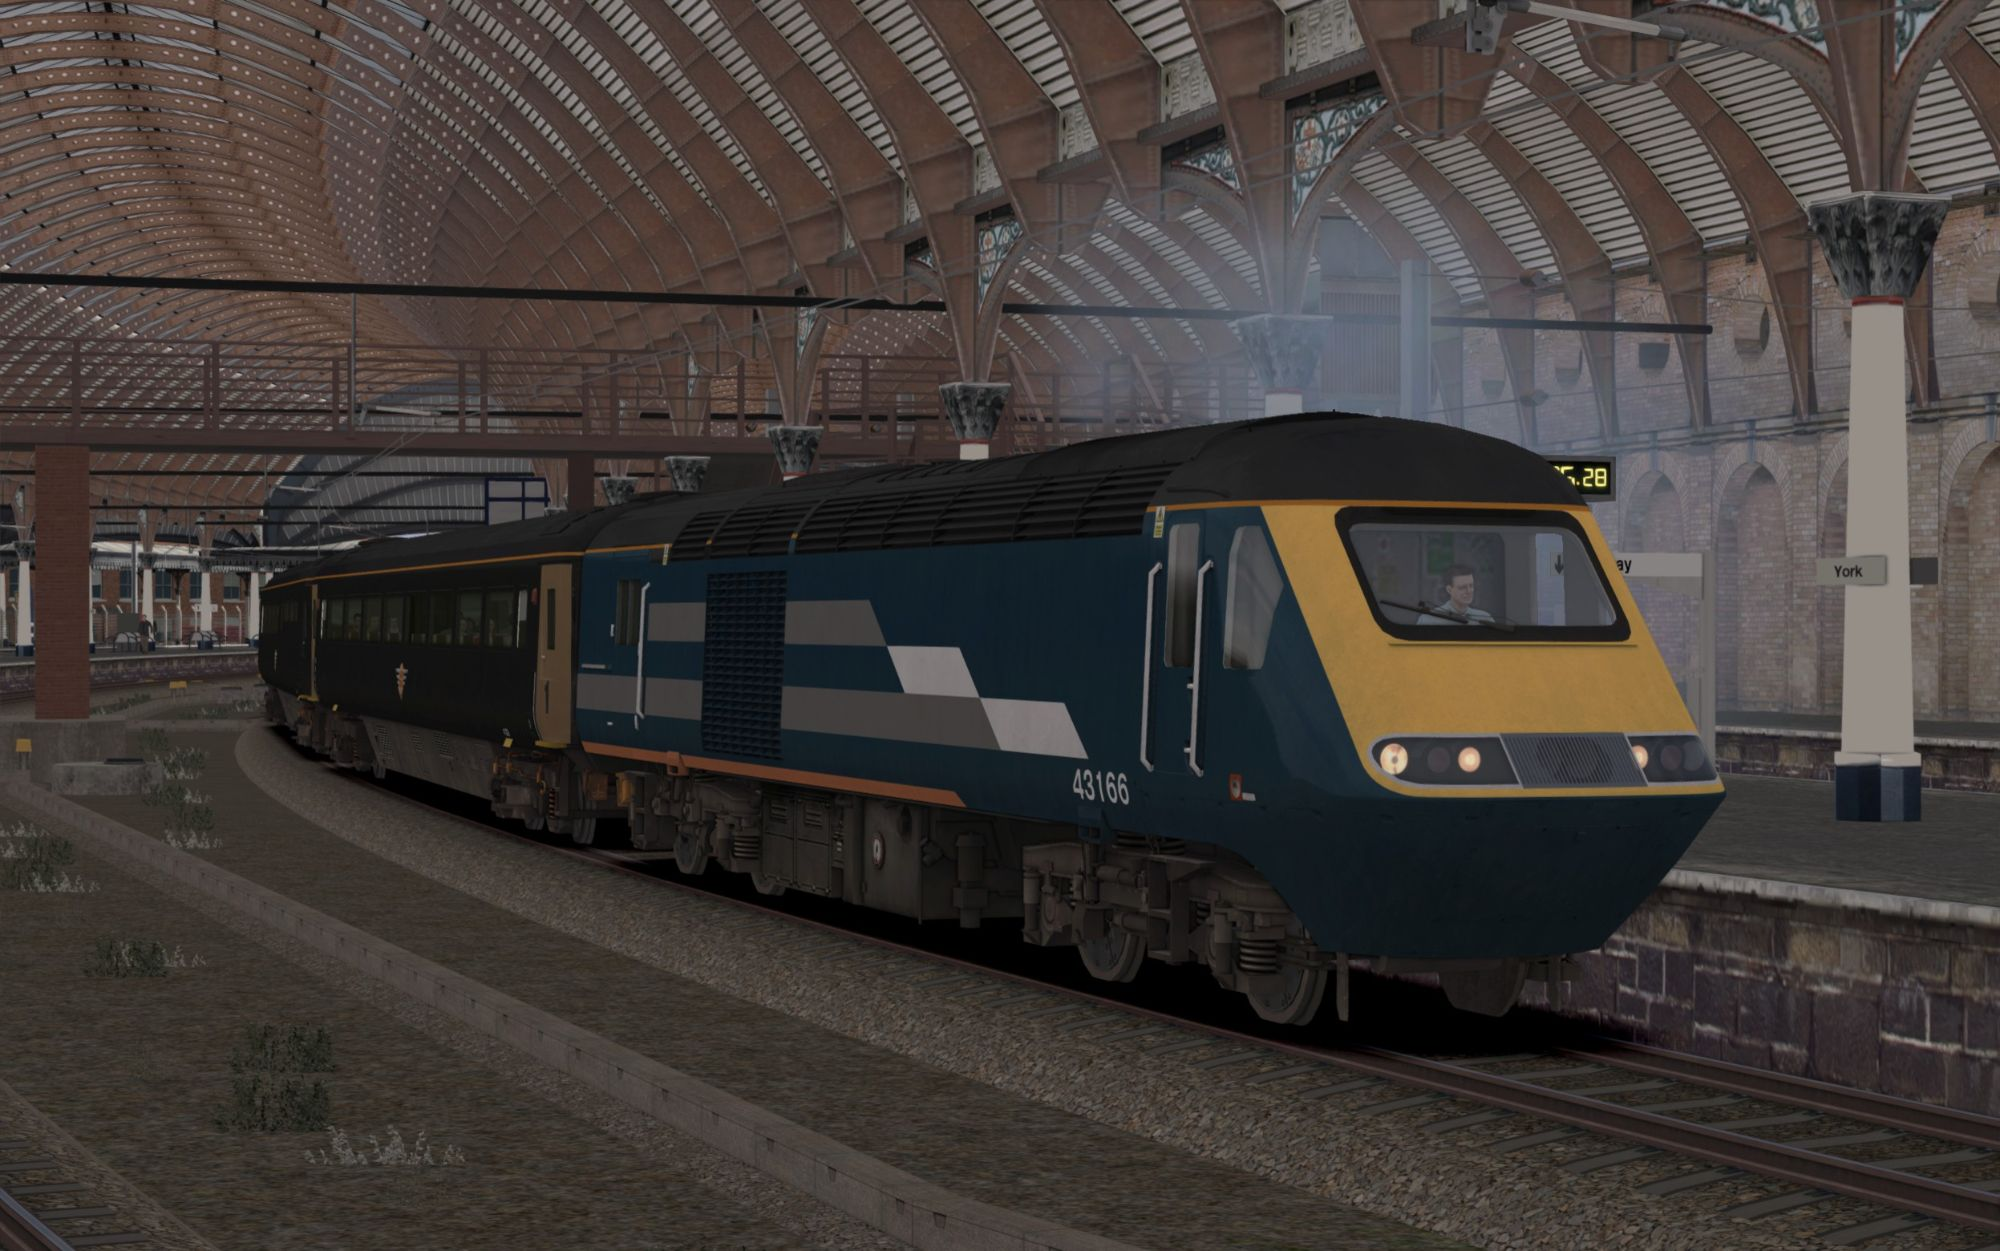 Image showing screenshot of the 1N28 - 1650 London Kings Cross to Sunderland scenario